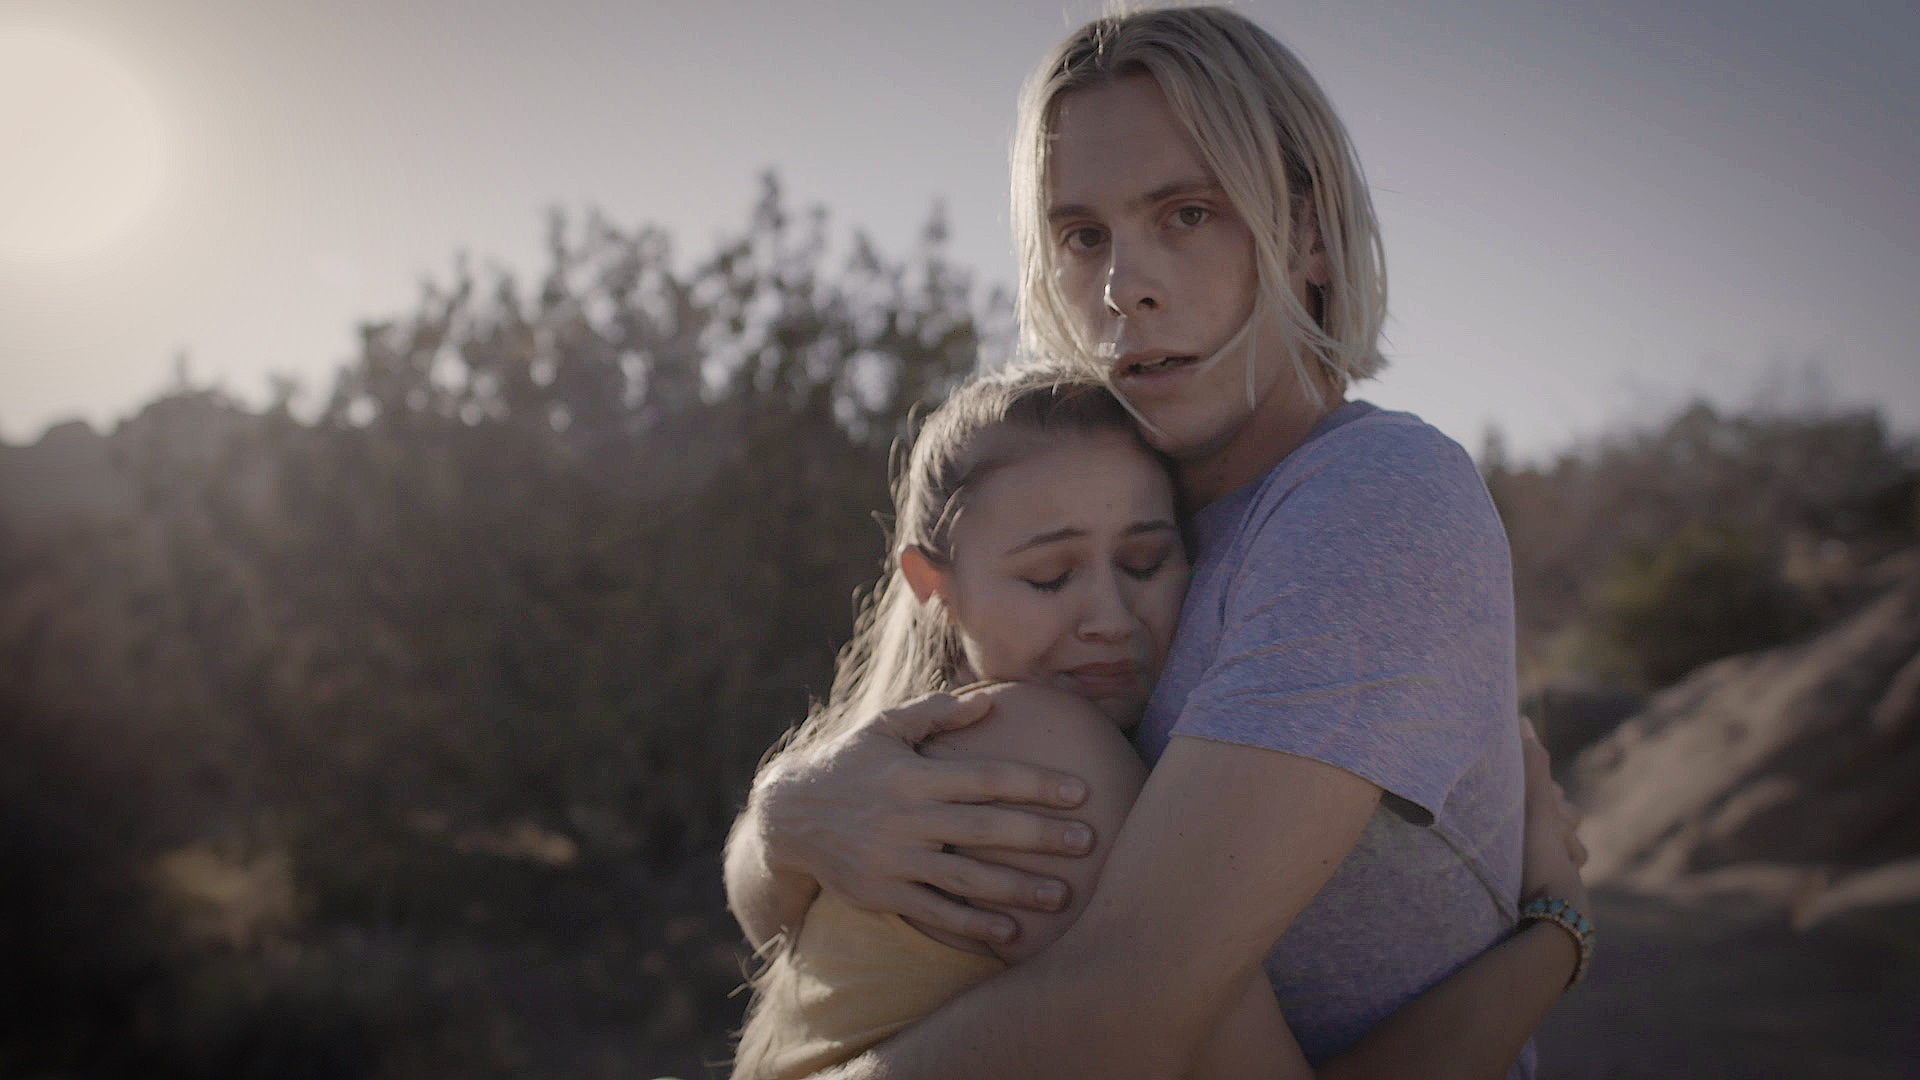 """The suspense film """"Voyeur,"""" starring R5's Riker Lynch and Ayla Kell, is raising finishing funds with a Kickstarter campaign. The Coachella-themed thriller was filmed last summer in California and is nearing completion, but needs funding for completion of final audio, color, and VFX. (Photo: Business Wire)"""